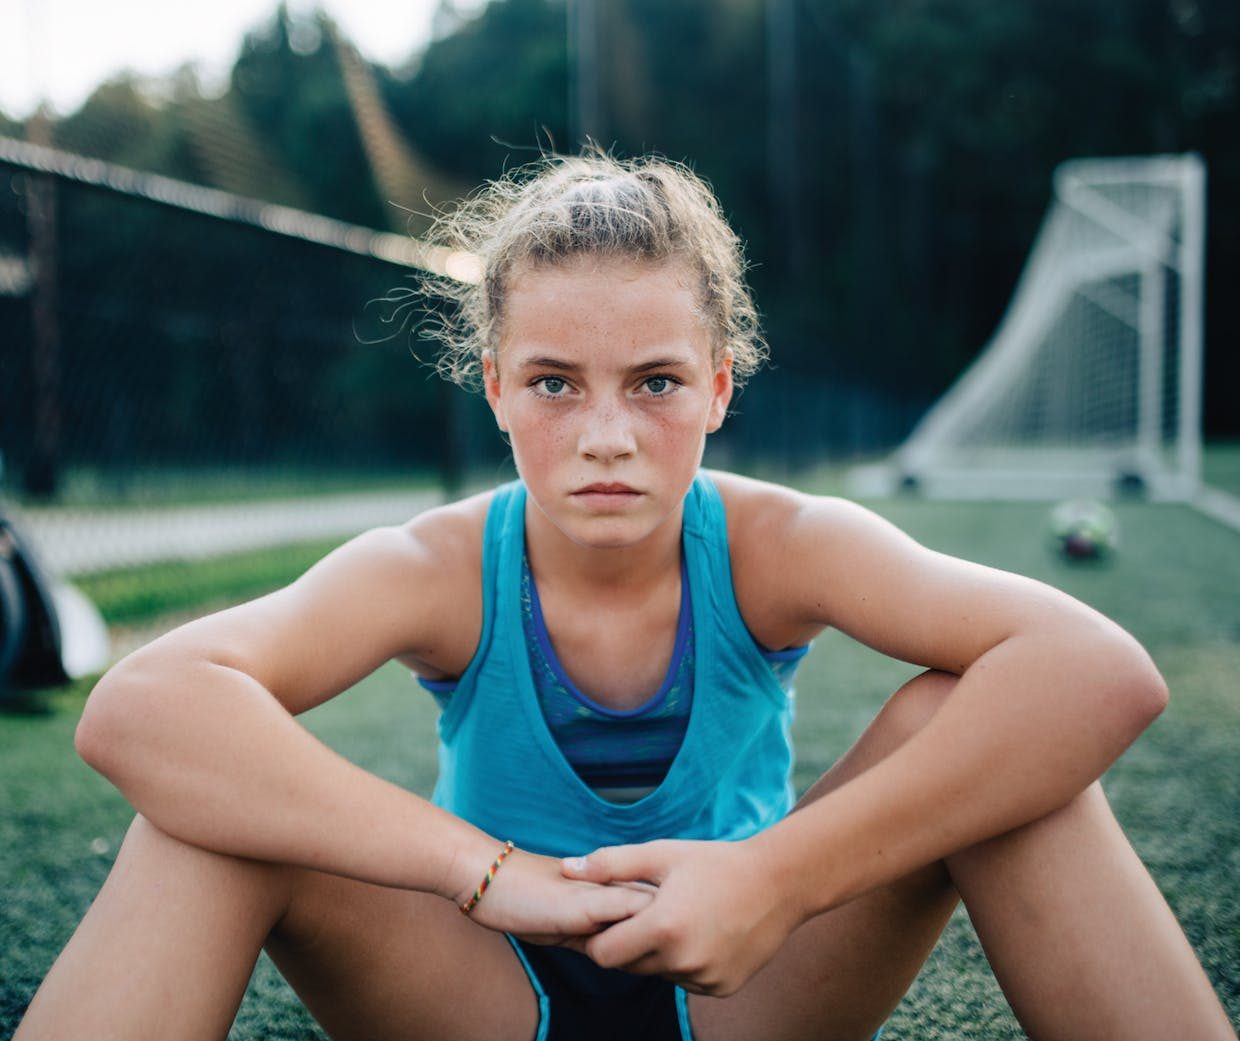 Visa looks to end 'vicious circle' in women's football as it launches World Cup campaign – Marketing Week